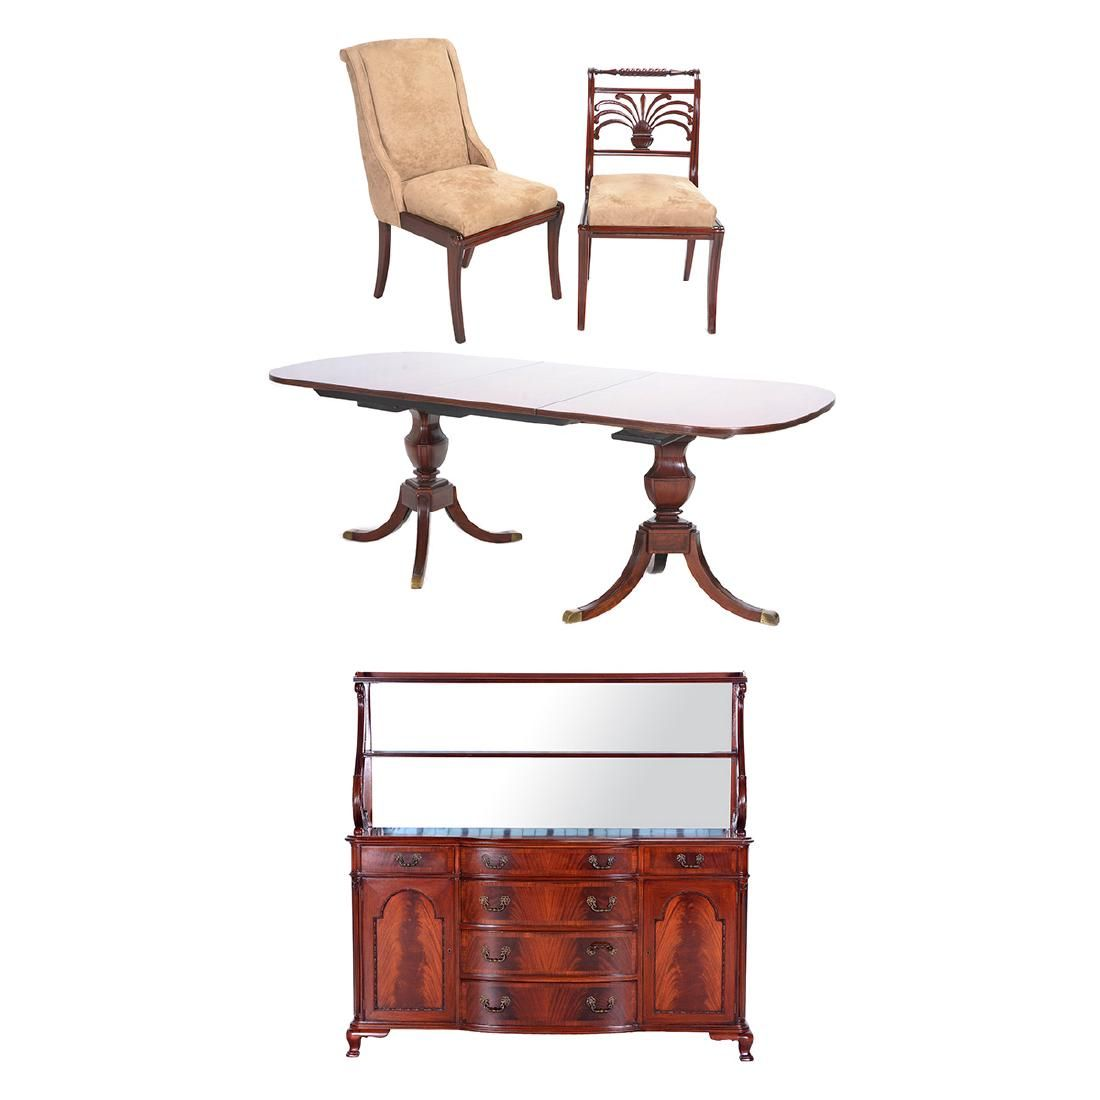 Schmieg and Kotzian Regency Style Mahogany Dining Suite